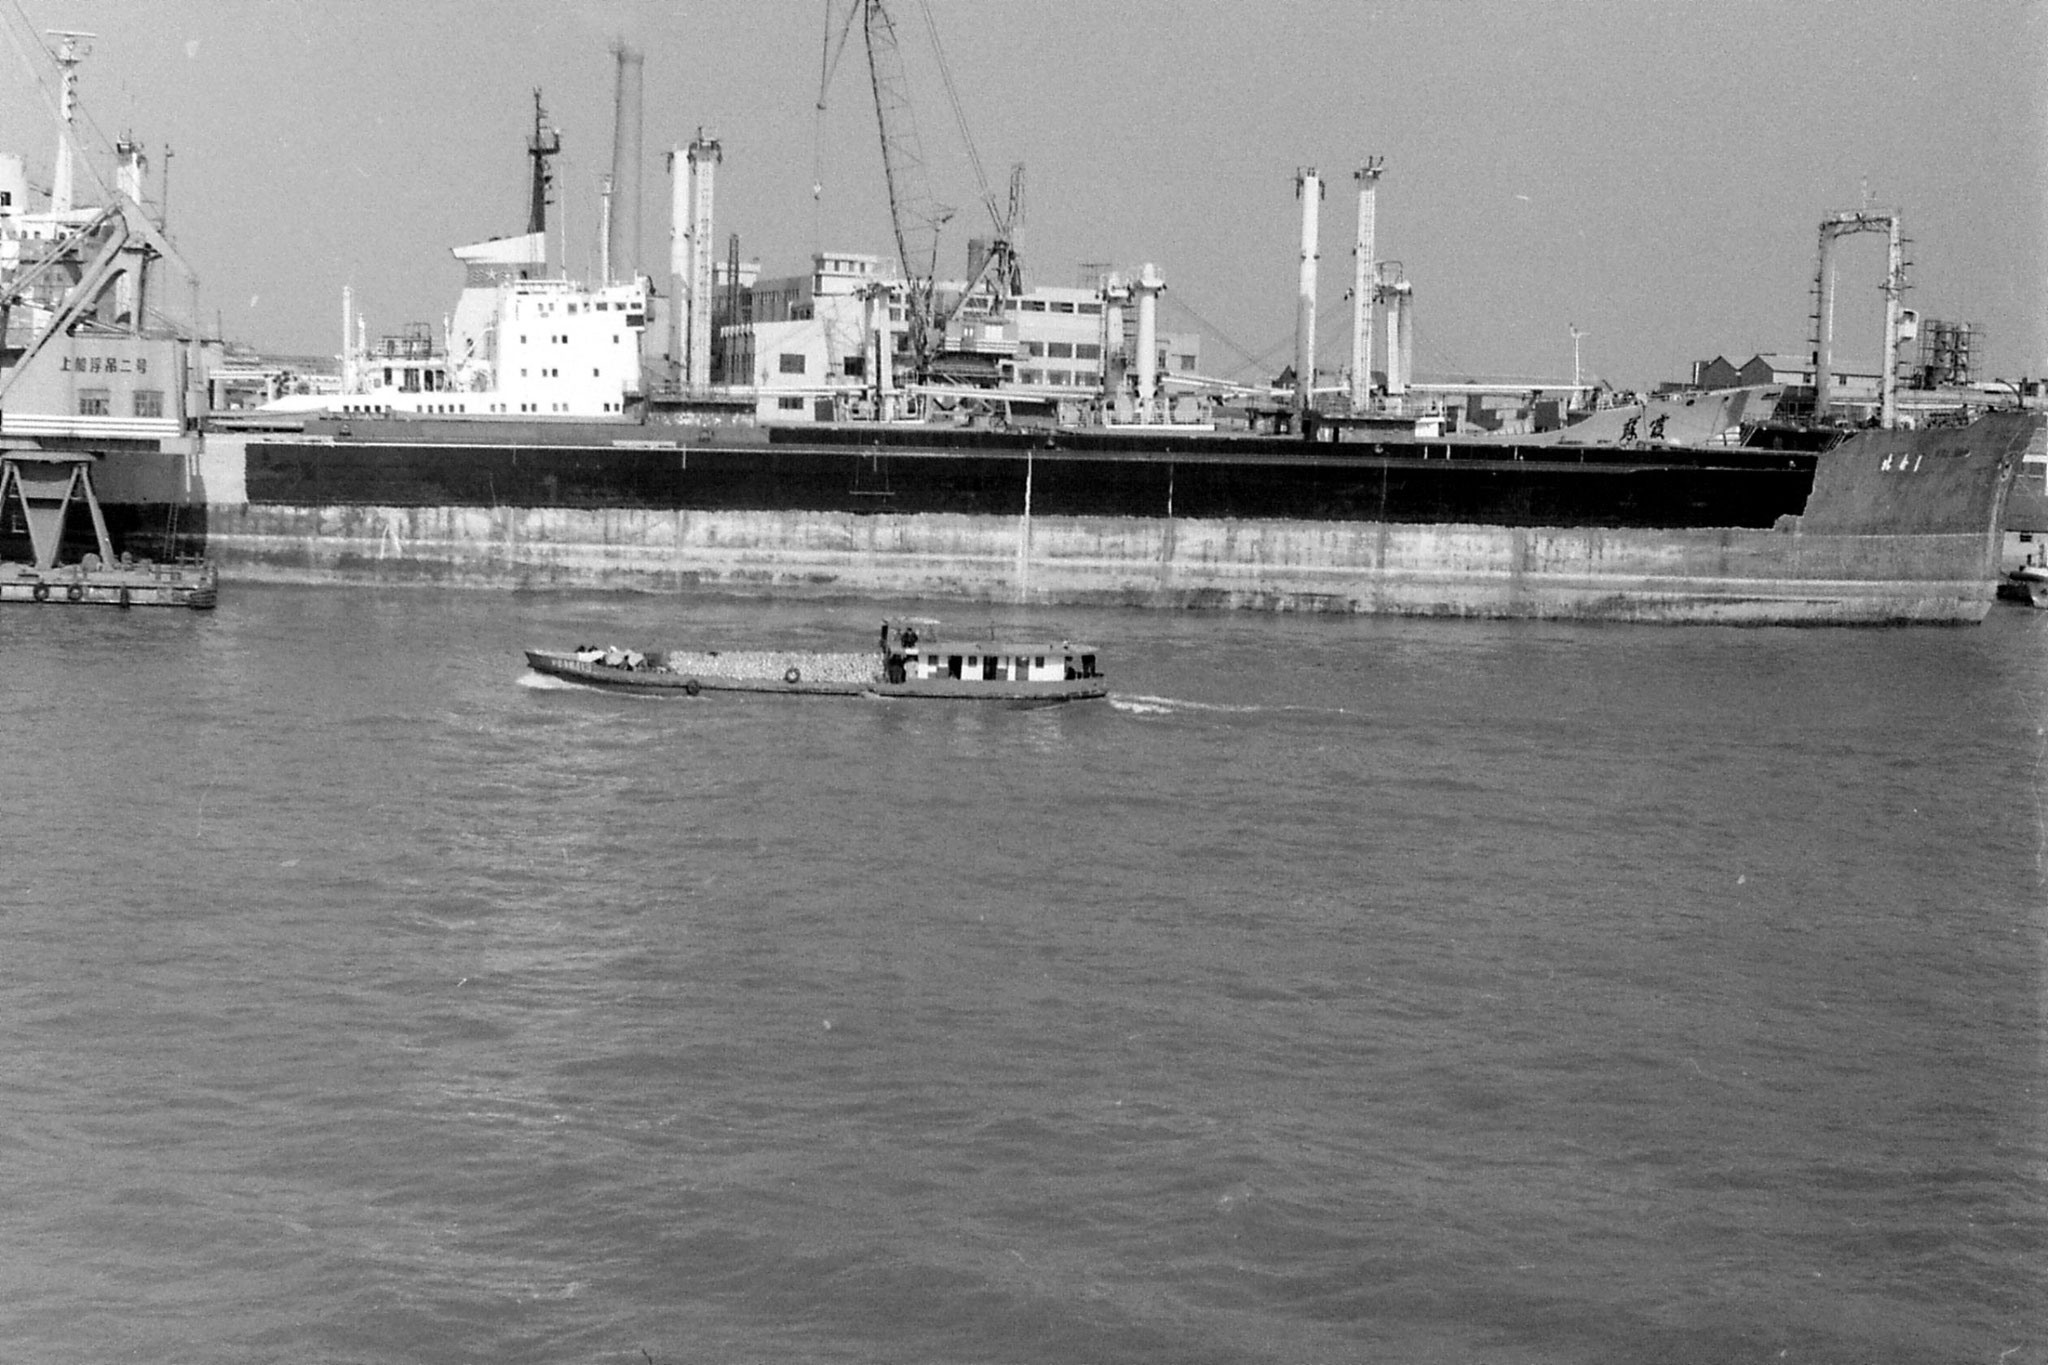 17/12/1988: 1: Shanghai harbour from ship to Kobe